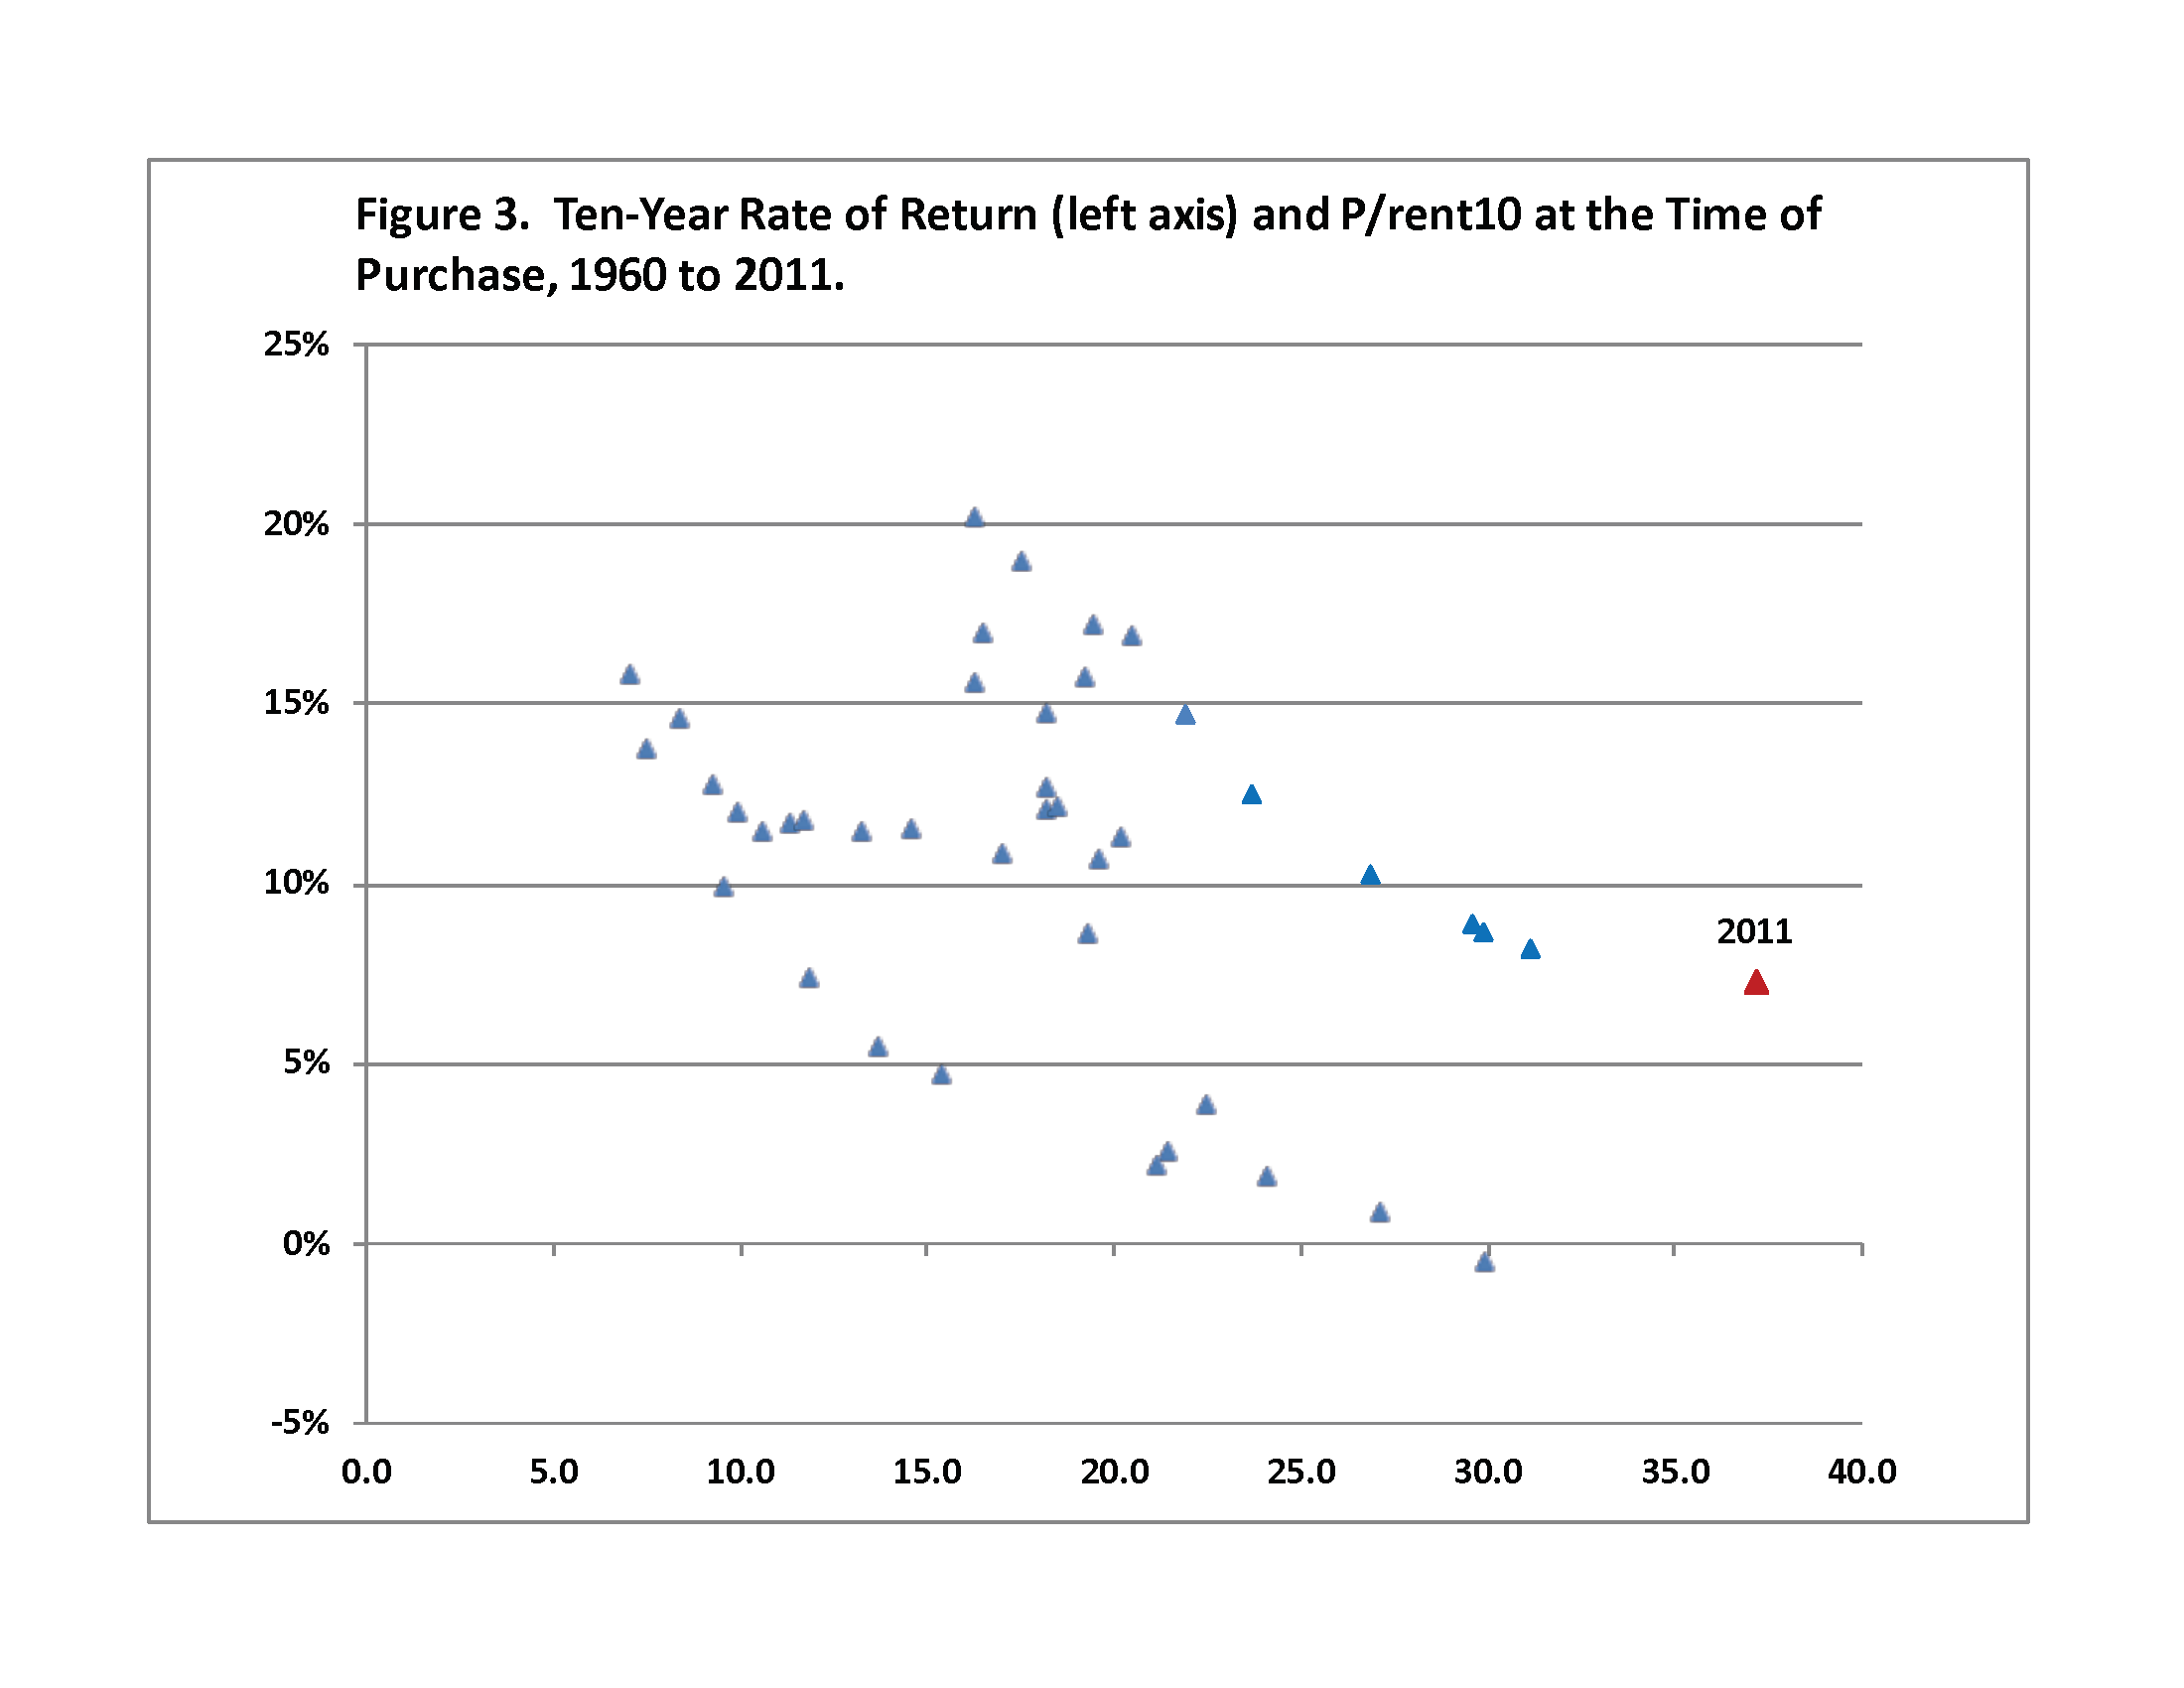 Figure 3. Ten-Year Rate of Return (left axis) and P/rent10 at the Time of Purchase, 1960 to 2011.